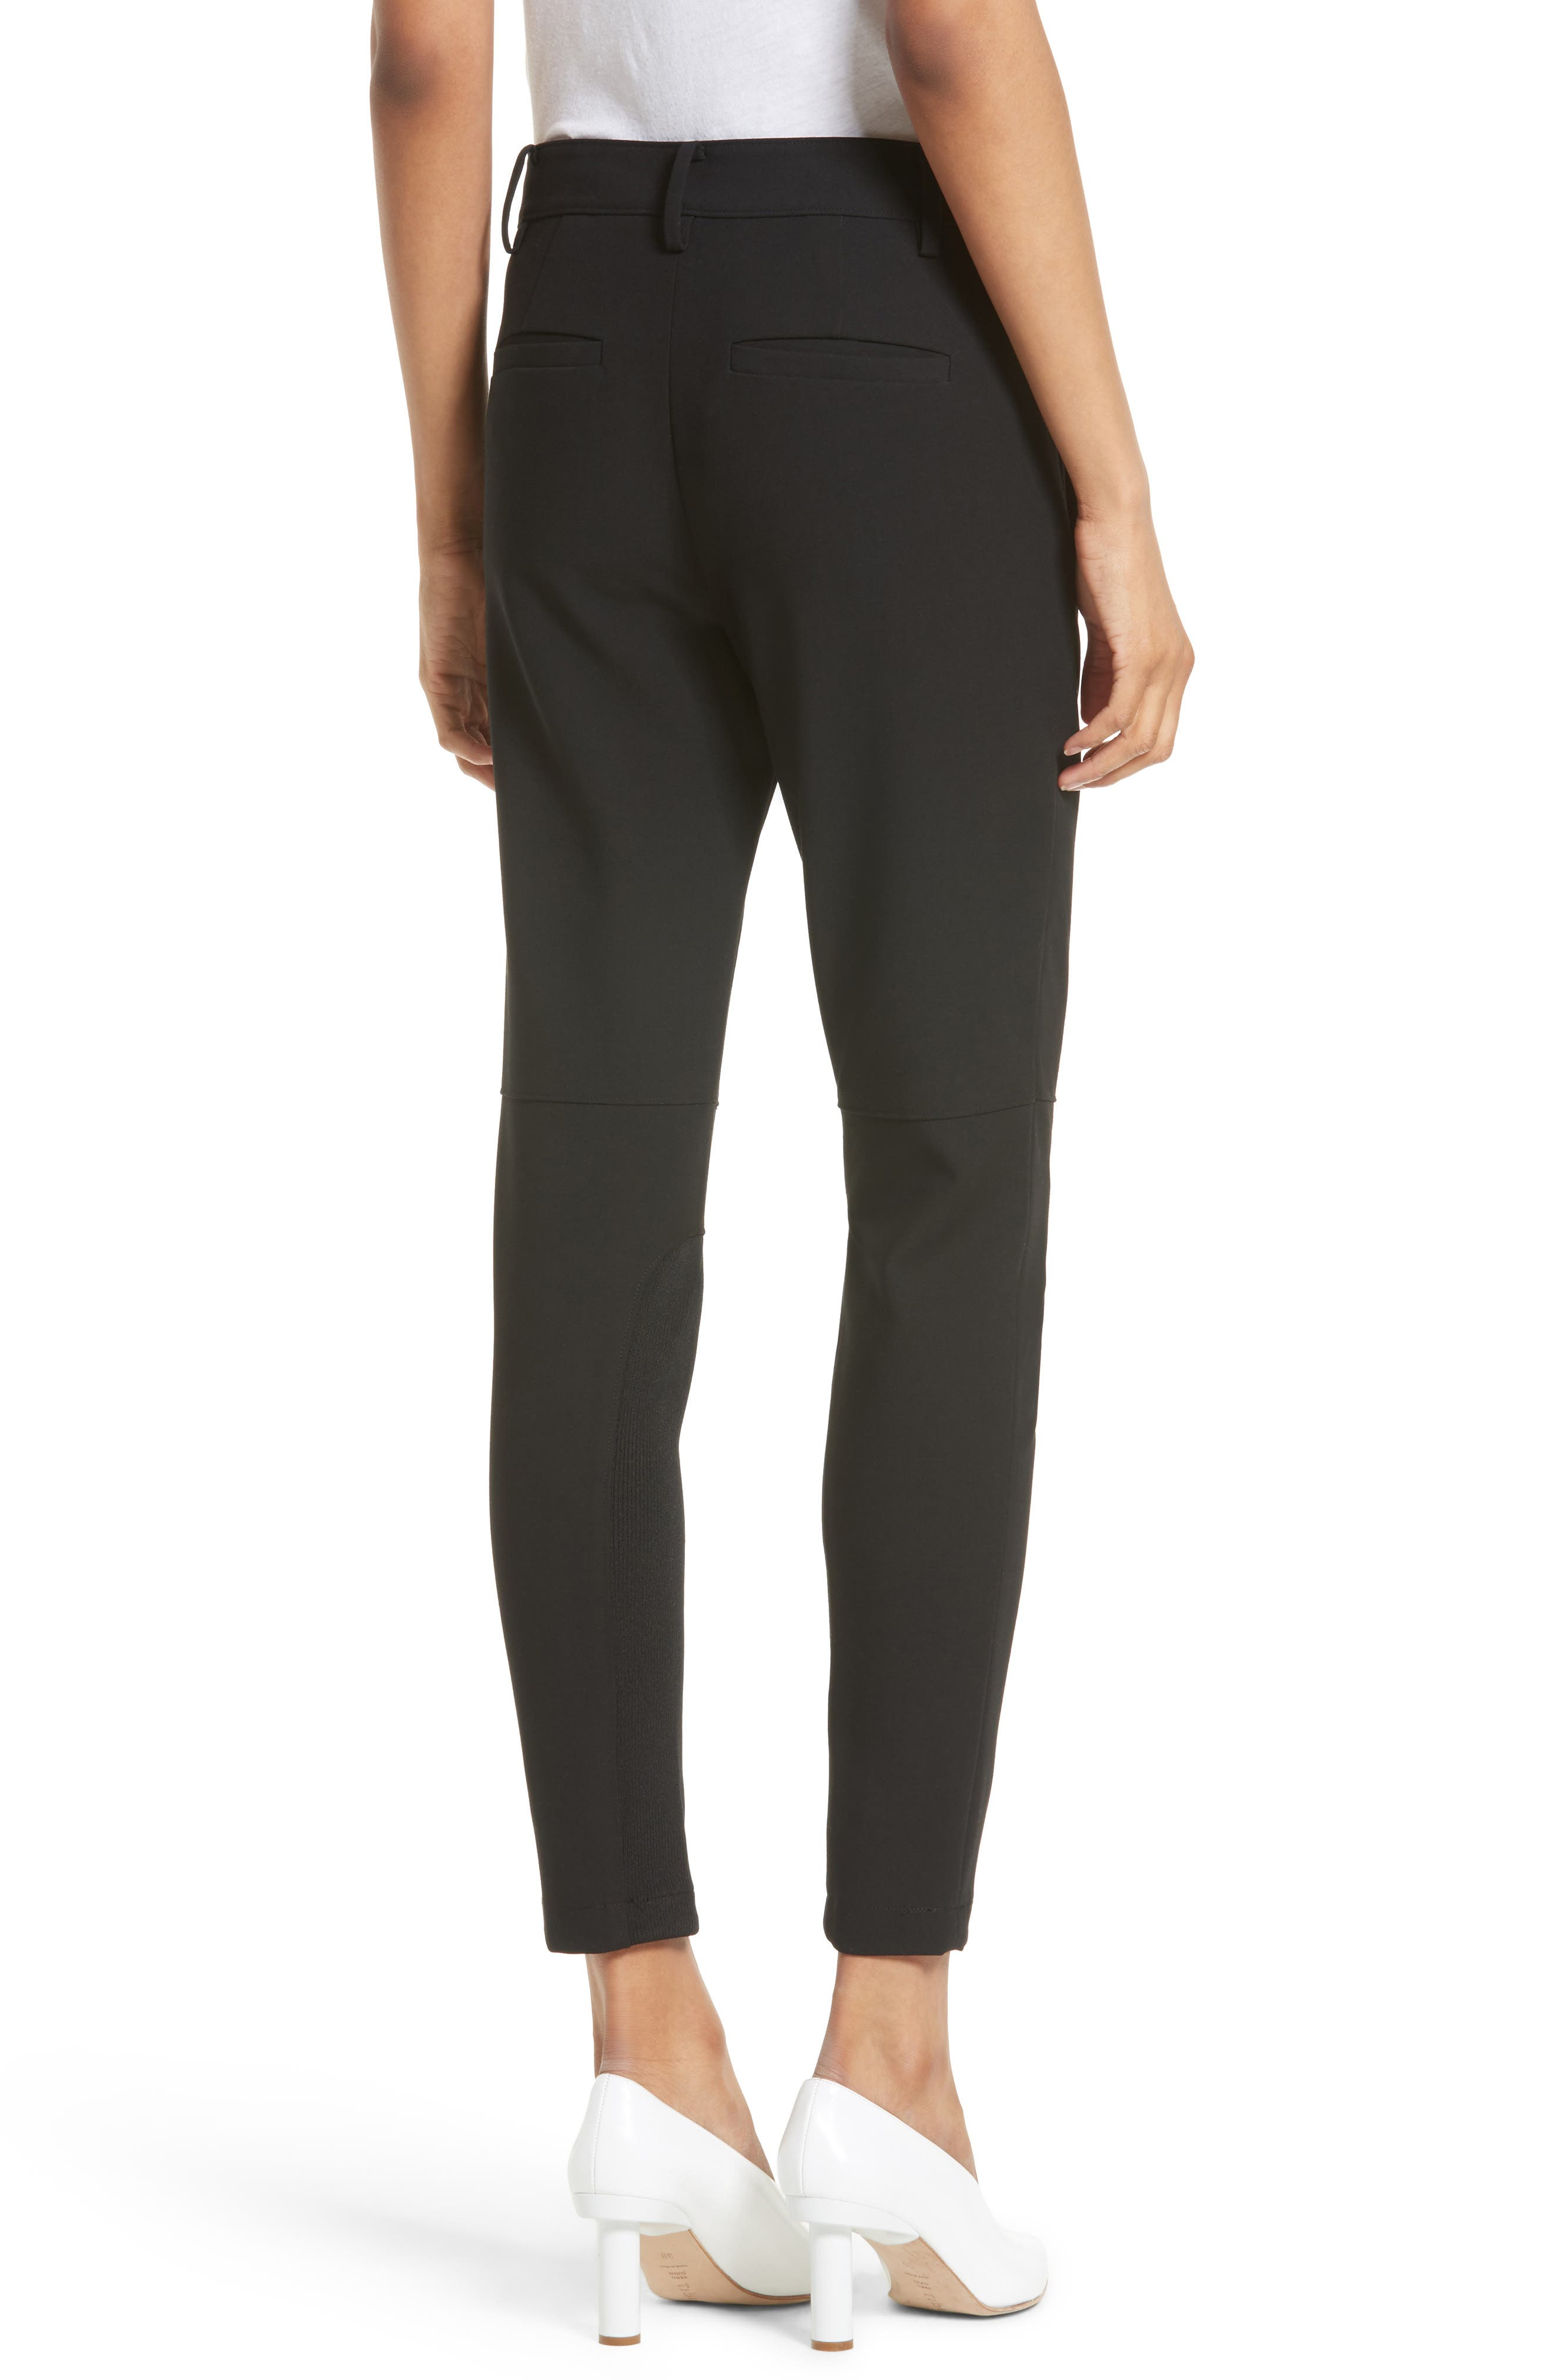 Alternate Image 3  - Tibi Anson Stretch Insert Ankle Pants